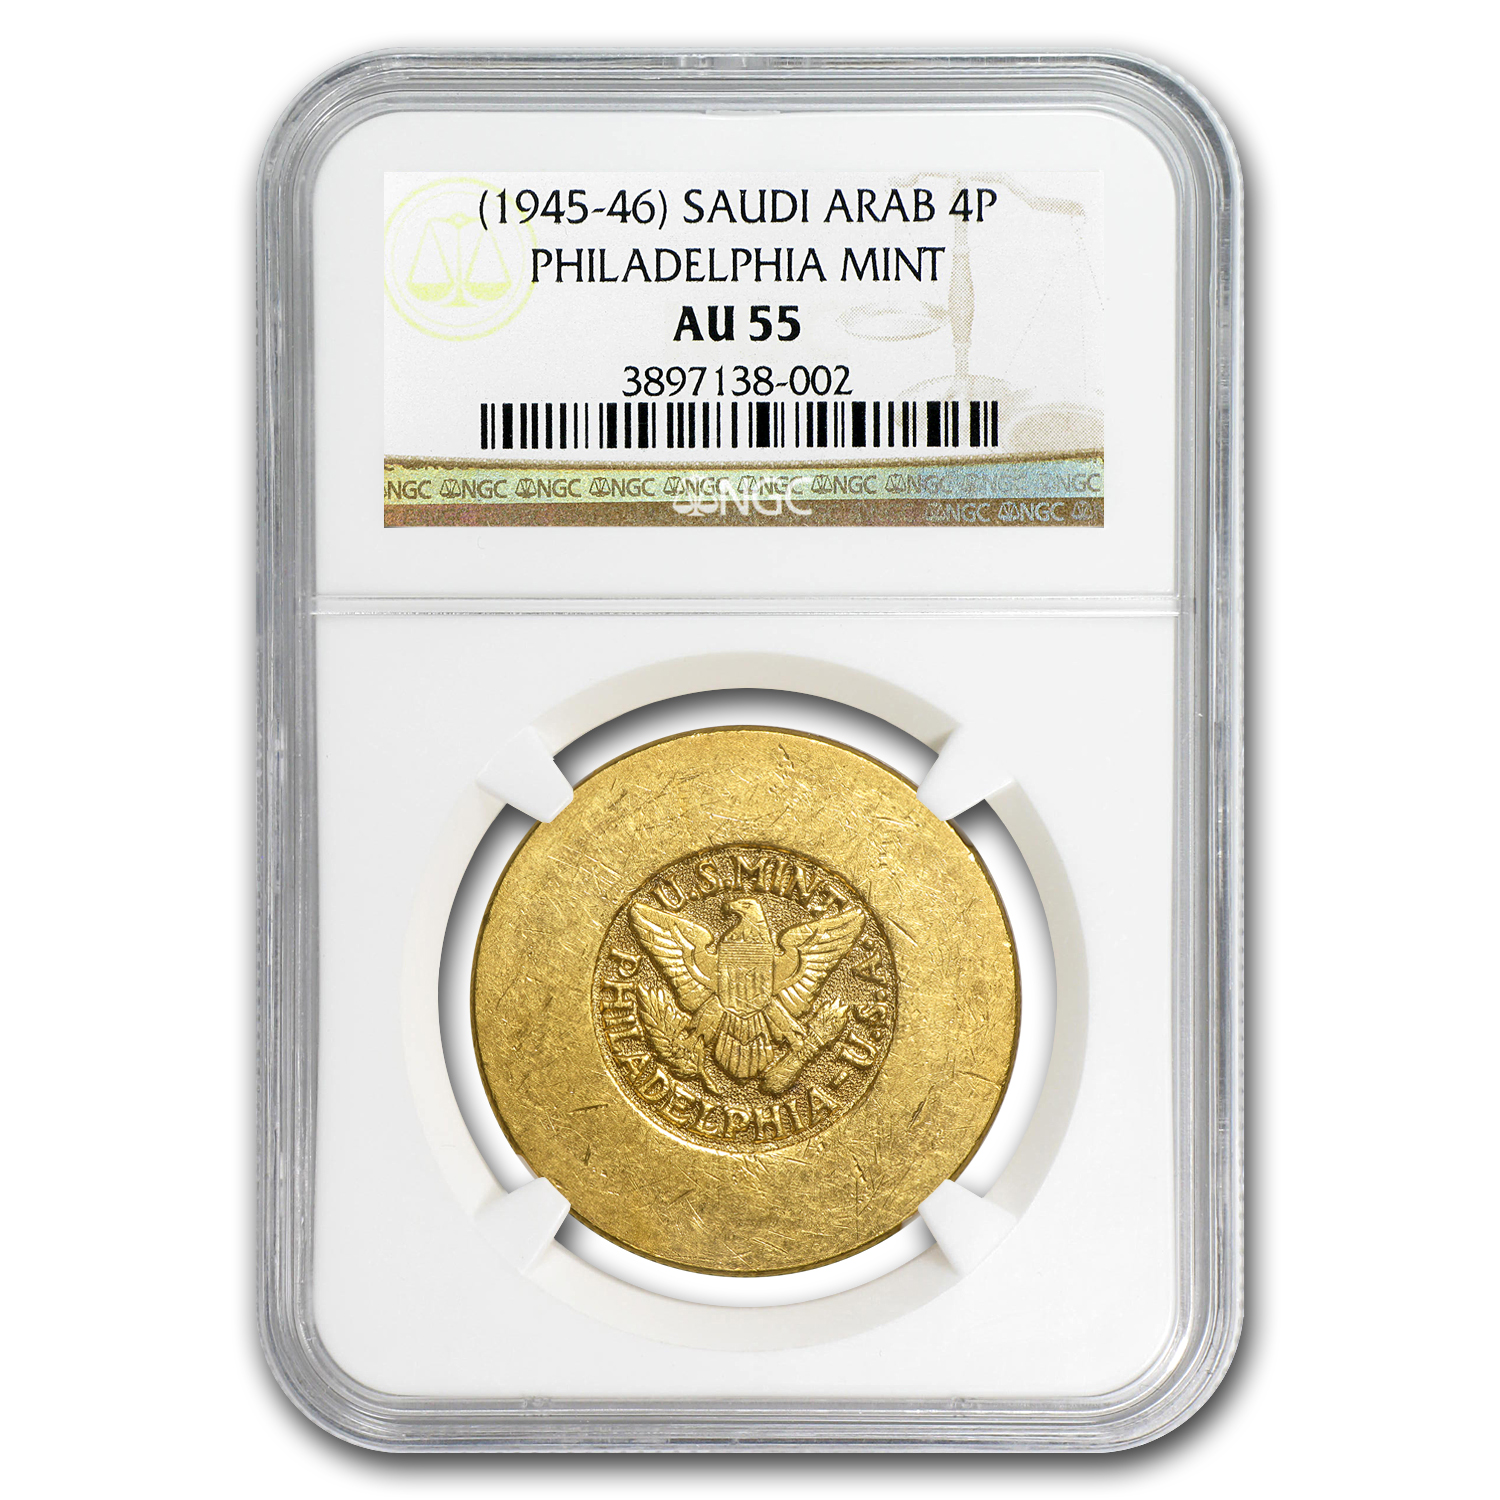 Saudi Arabia 1945-46 Gold 4 Pounds ARAMCO US Mint AU-55 NGC